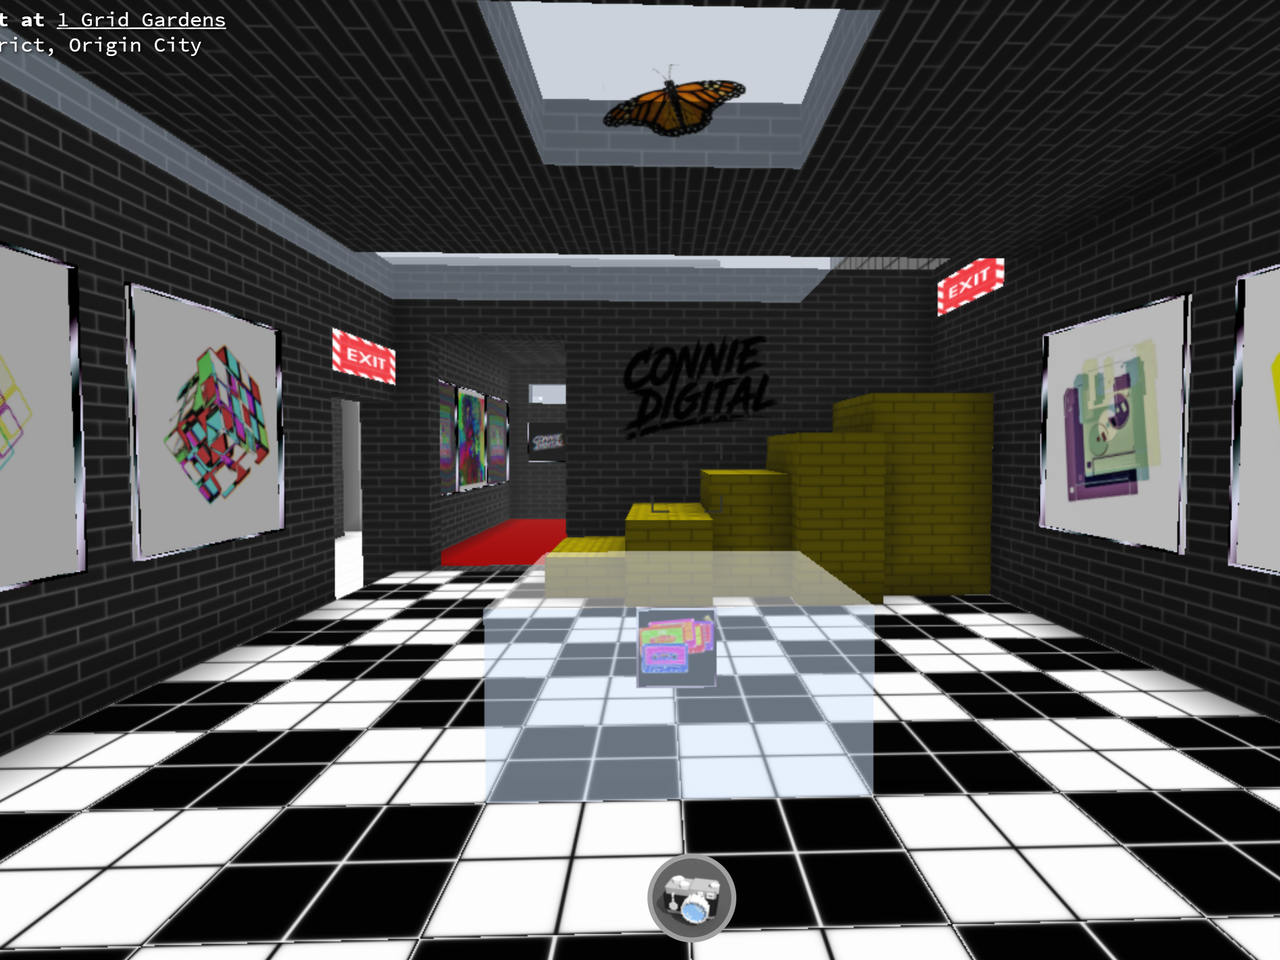 Connie Digital Virtual Art Gallery_6_Cryptovoxels